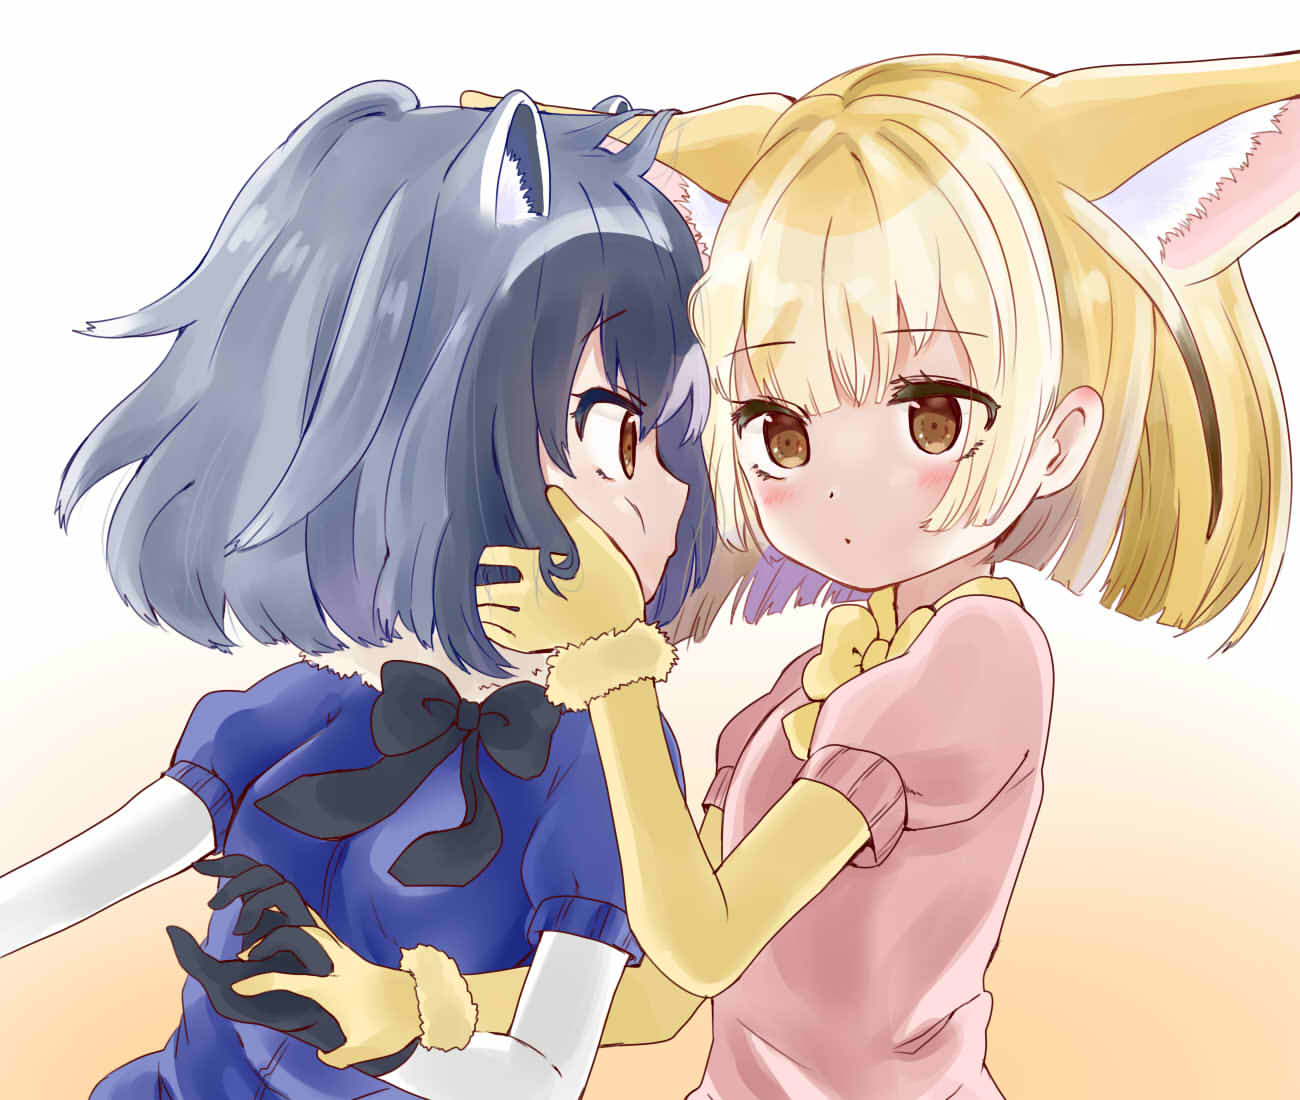 2girls animal_ears black_bow black_bowtie black_gloves black_hair blonde_hair blush bow bowtie brown_eyes common_raccoon_(kemono_friends) extra_ears eye_contact fennec_(kemono_friends) fox_ears gloves grey_hair hand_holding hand_in_another's_hair hekicho kemono_friends looking_at_another multiple_girls open_mouth puffy_short_sleeves puffy_sleeves raccoon_ears short_hair short_sleeves yellow_bow yellow_bowtie yellow_gloves yuri